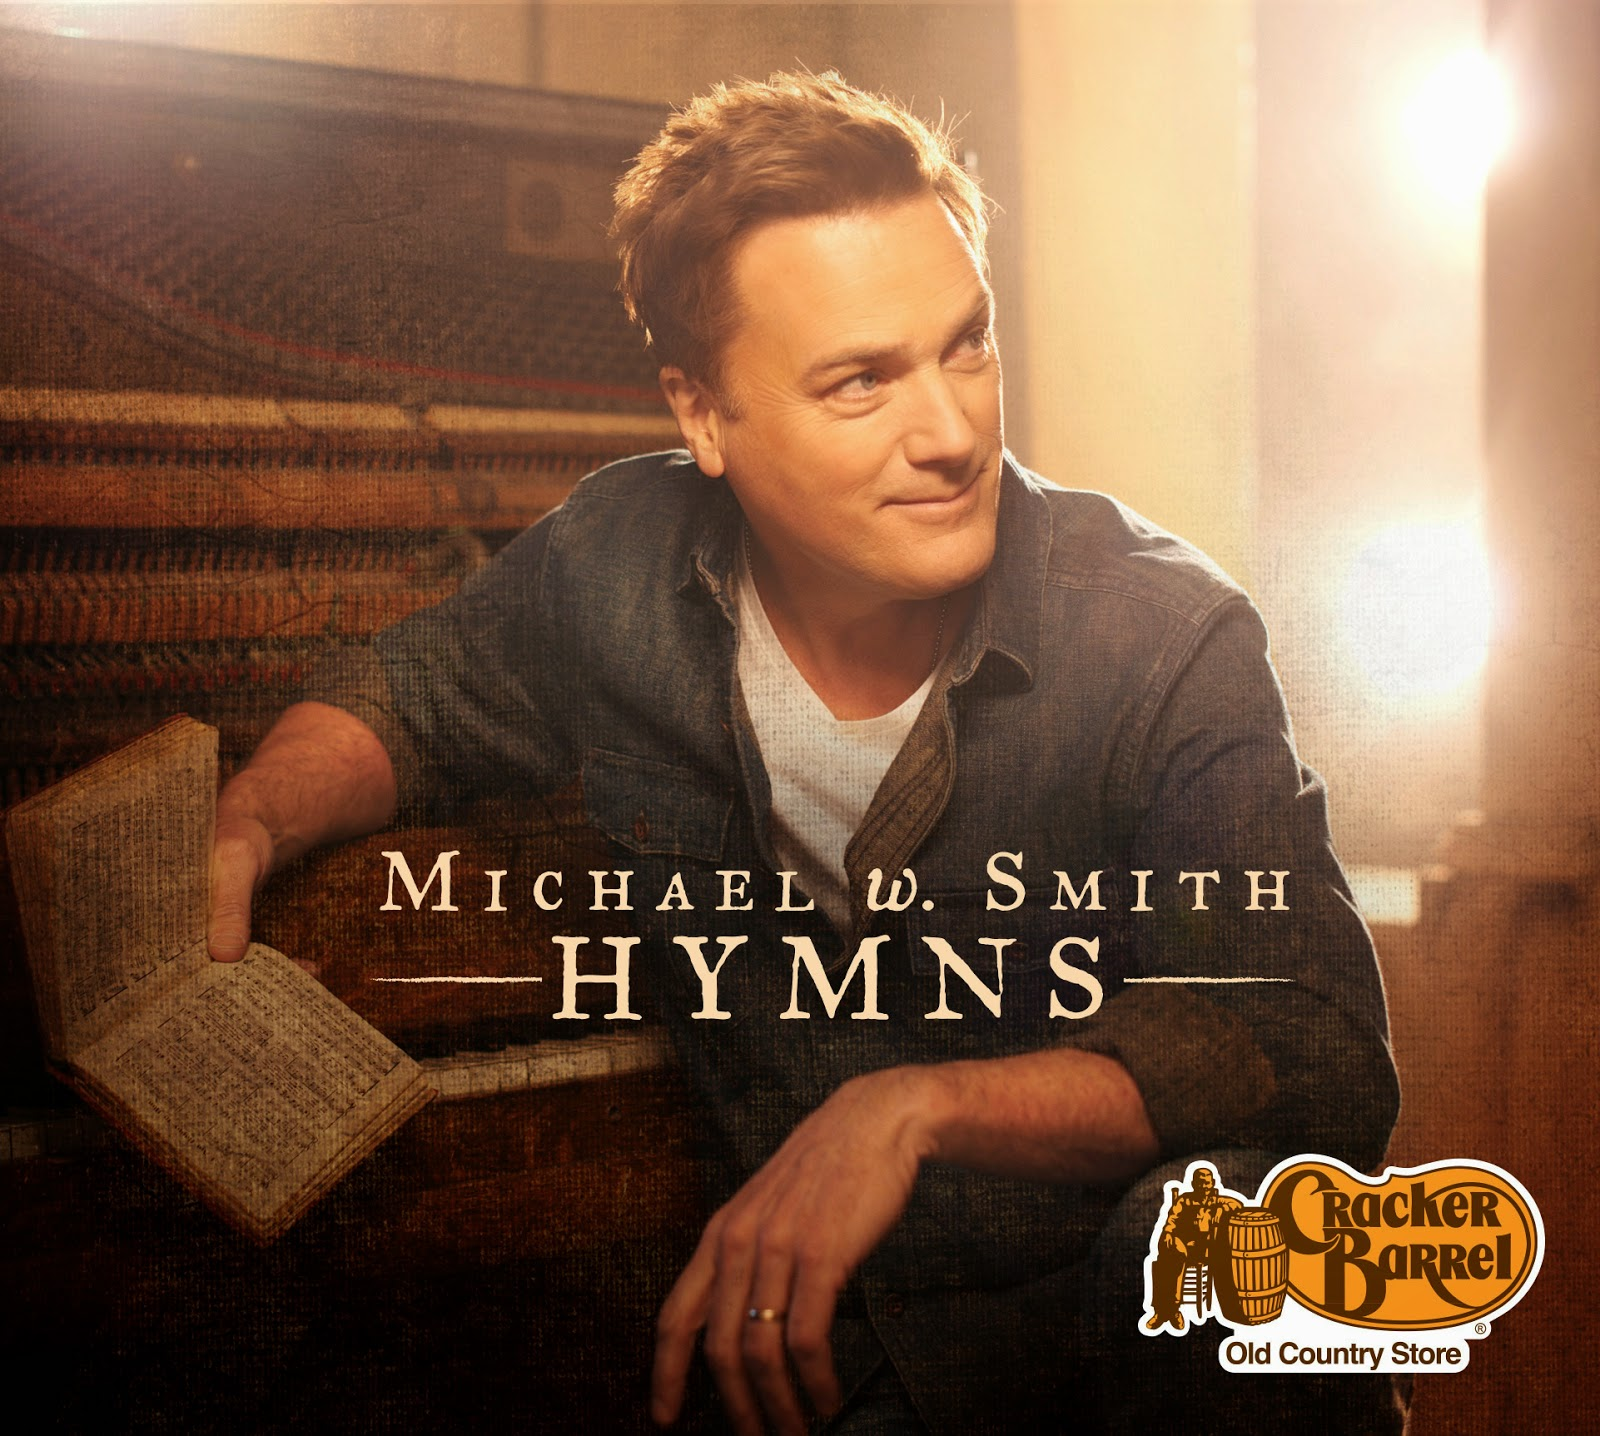 Michael W. Smith - Hymns 2014 English Christian Album Download